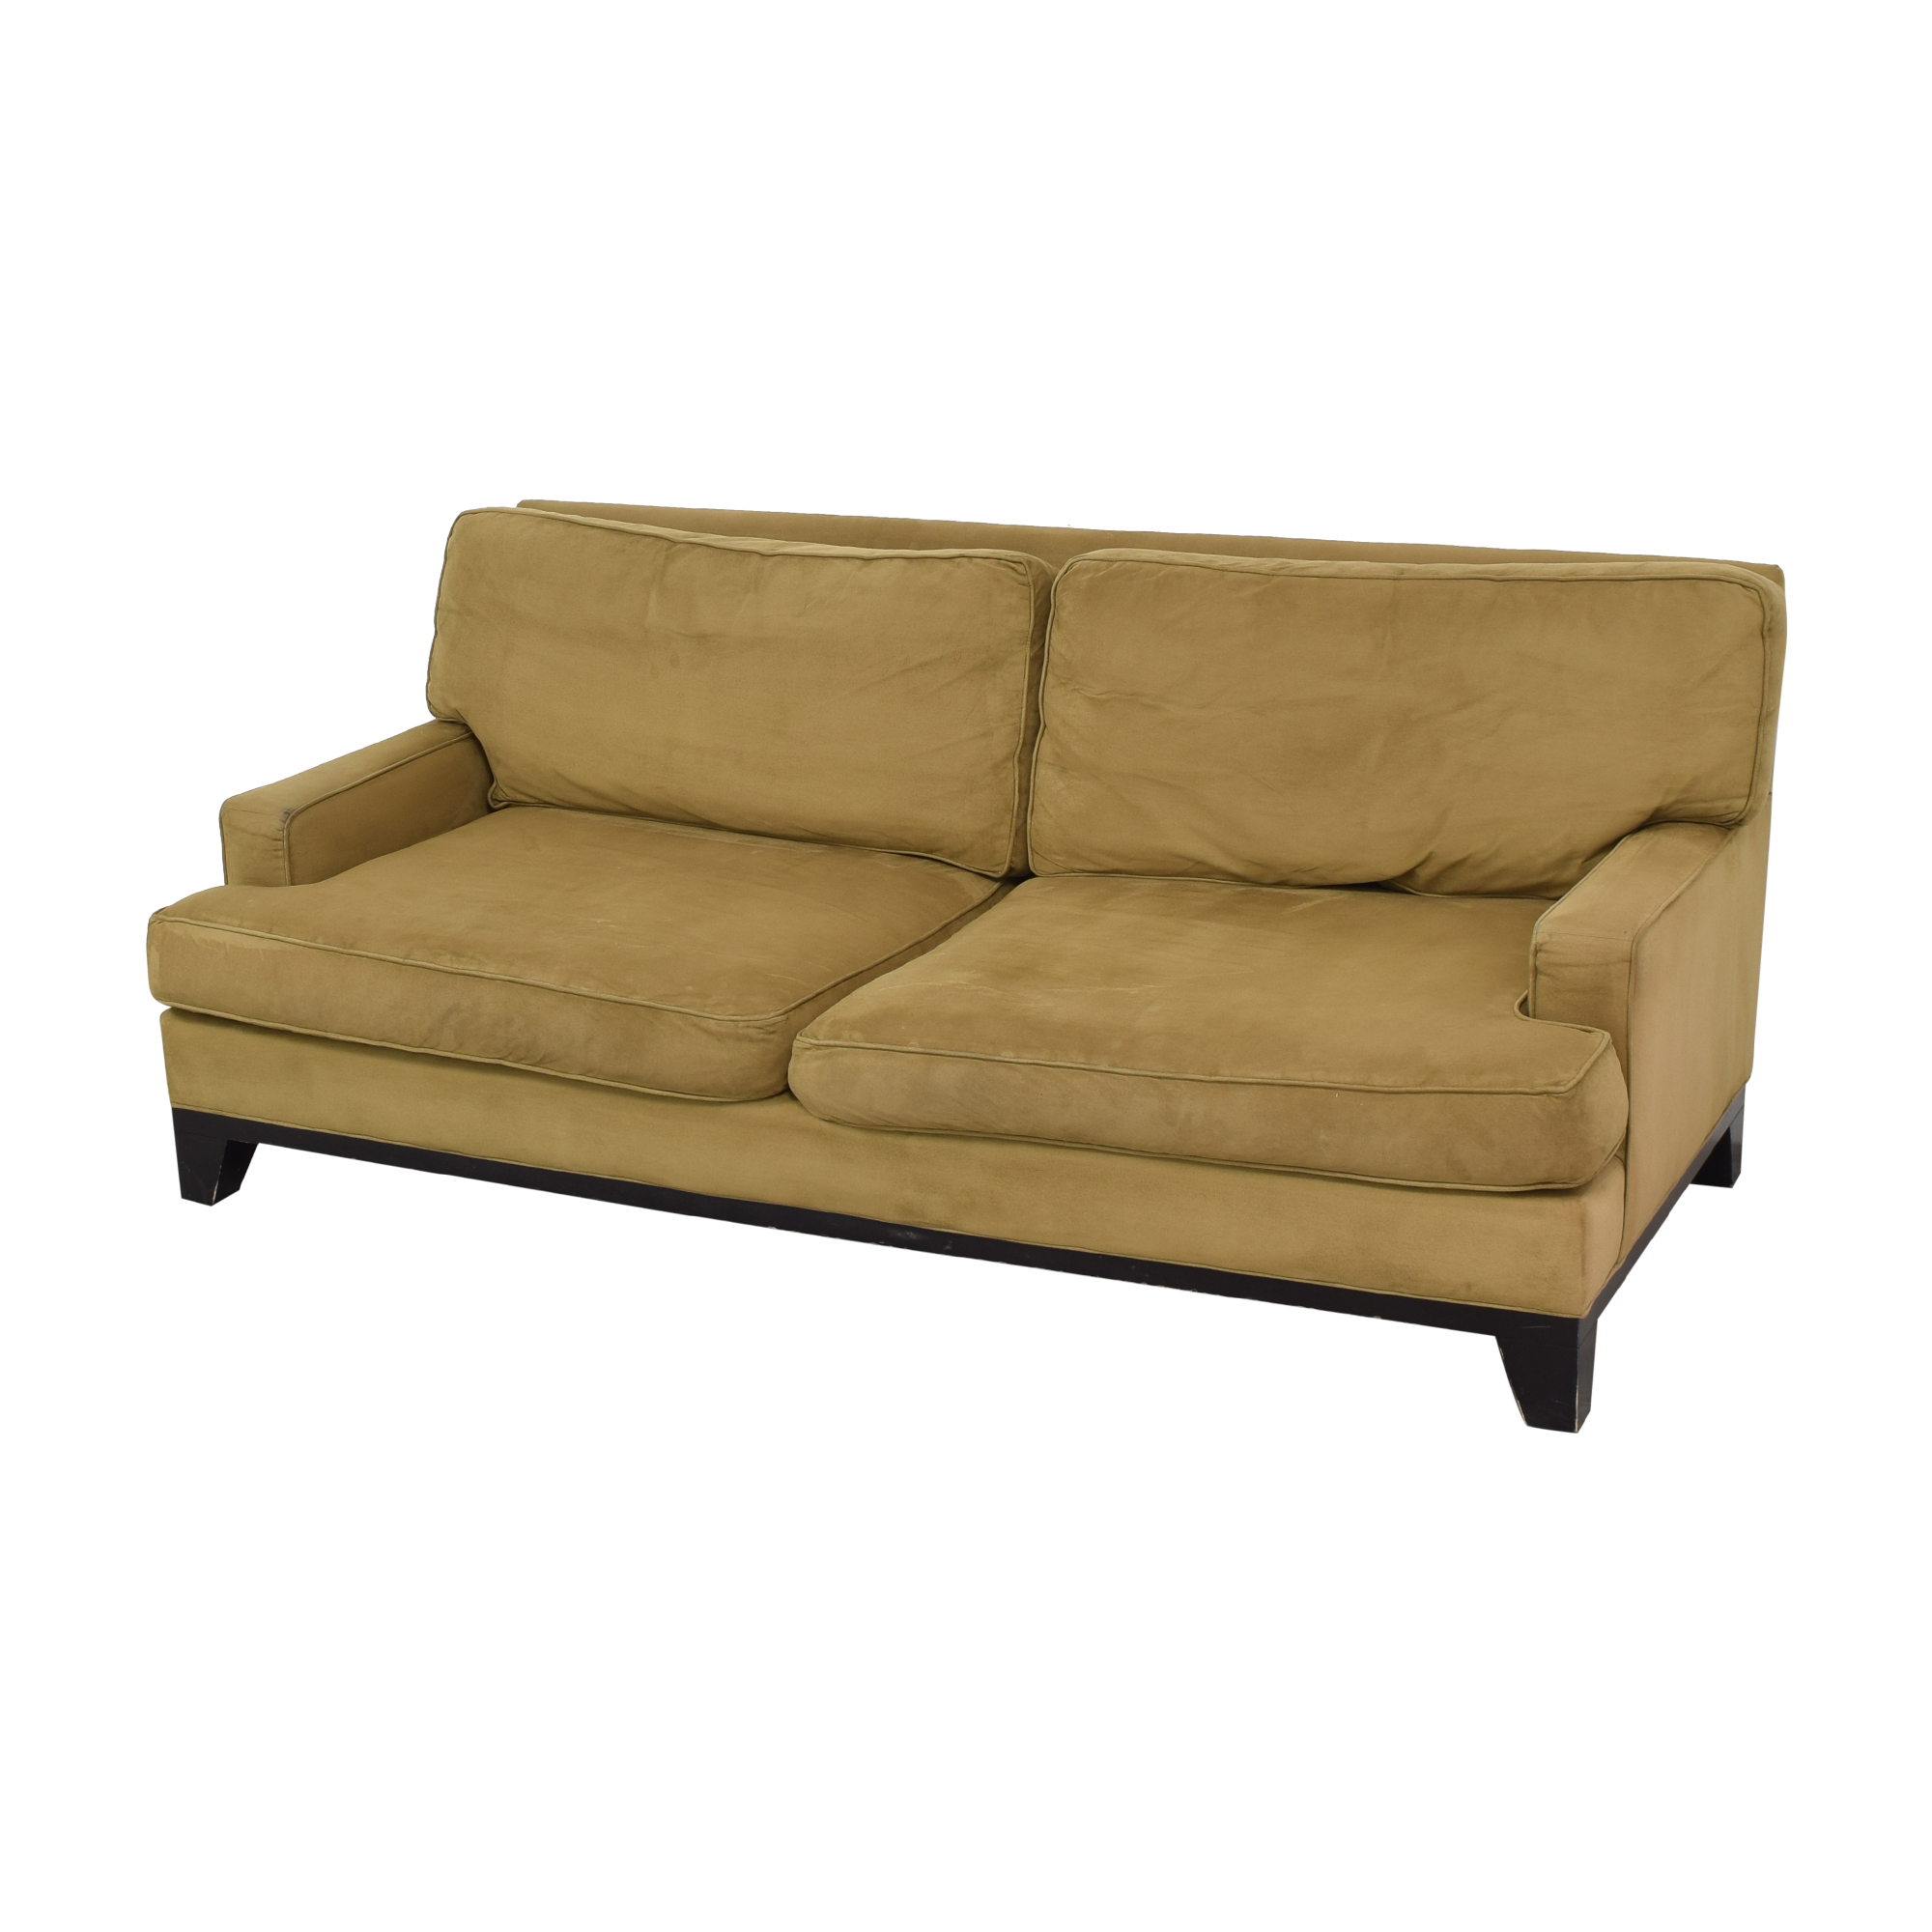 buy Pottery Barn Melrose Too Sofa Pottery Barn Classic Sofas